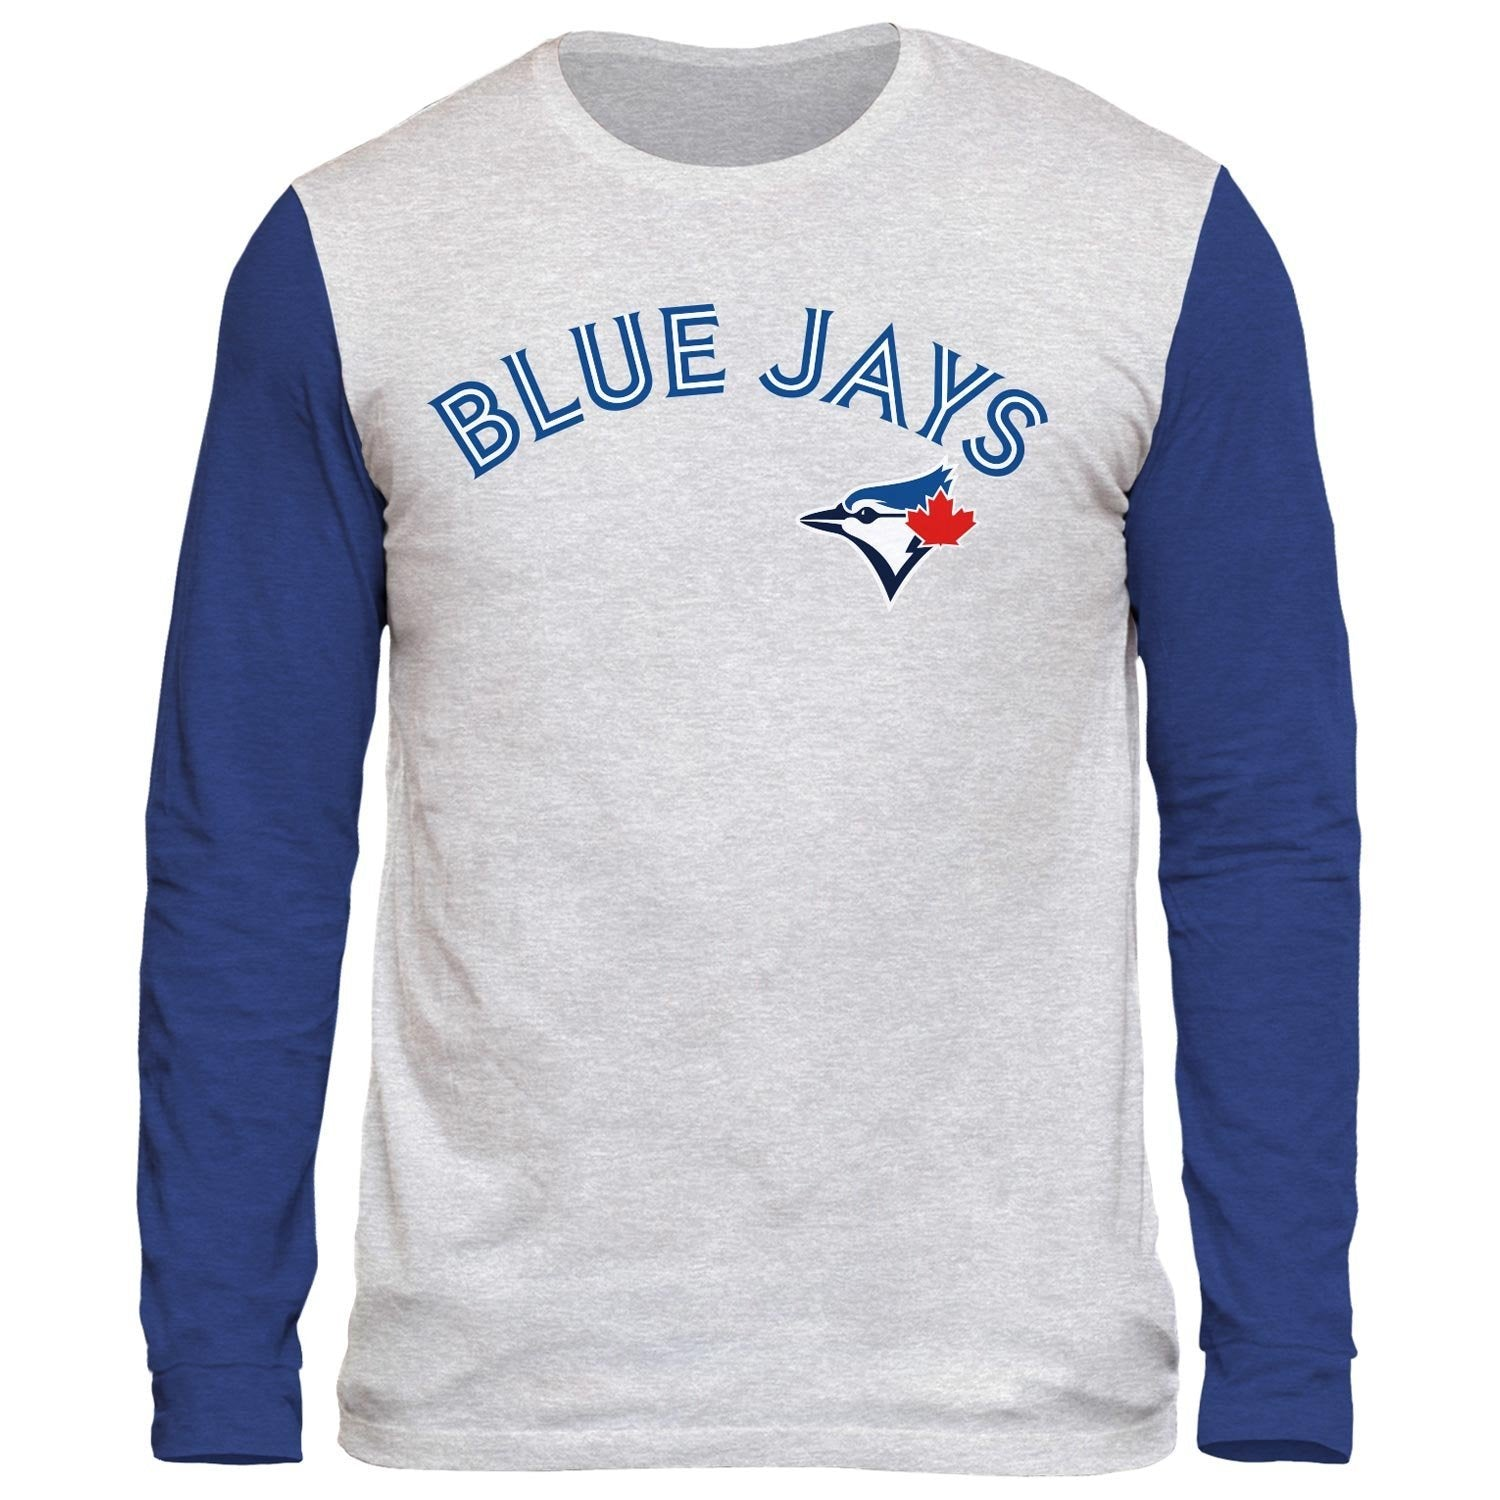 Toronto Blue Jays Shortstop Tri-Blend Long Sleeve T-Shirt Raglan 3-Quarter Tee